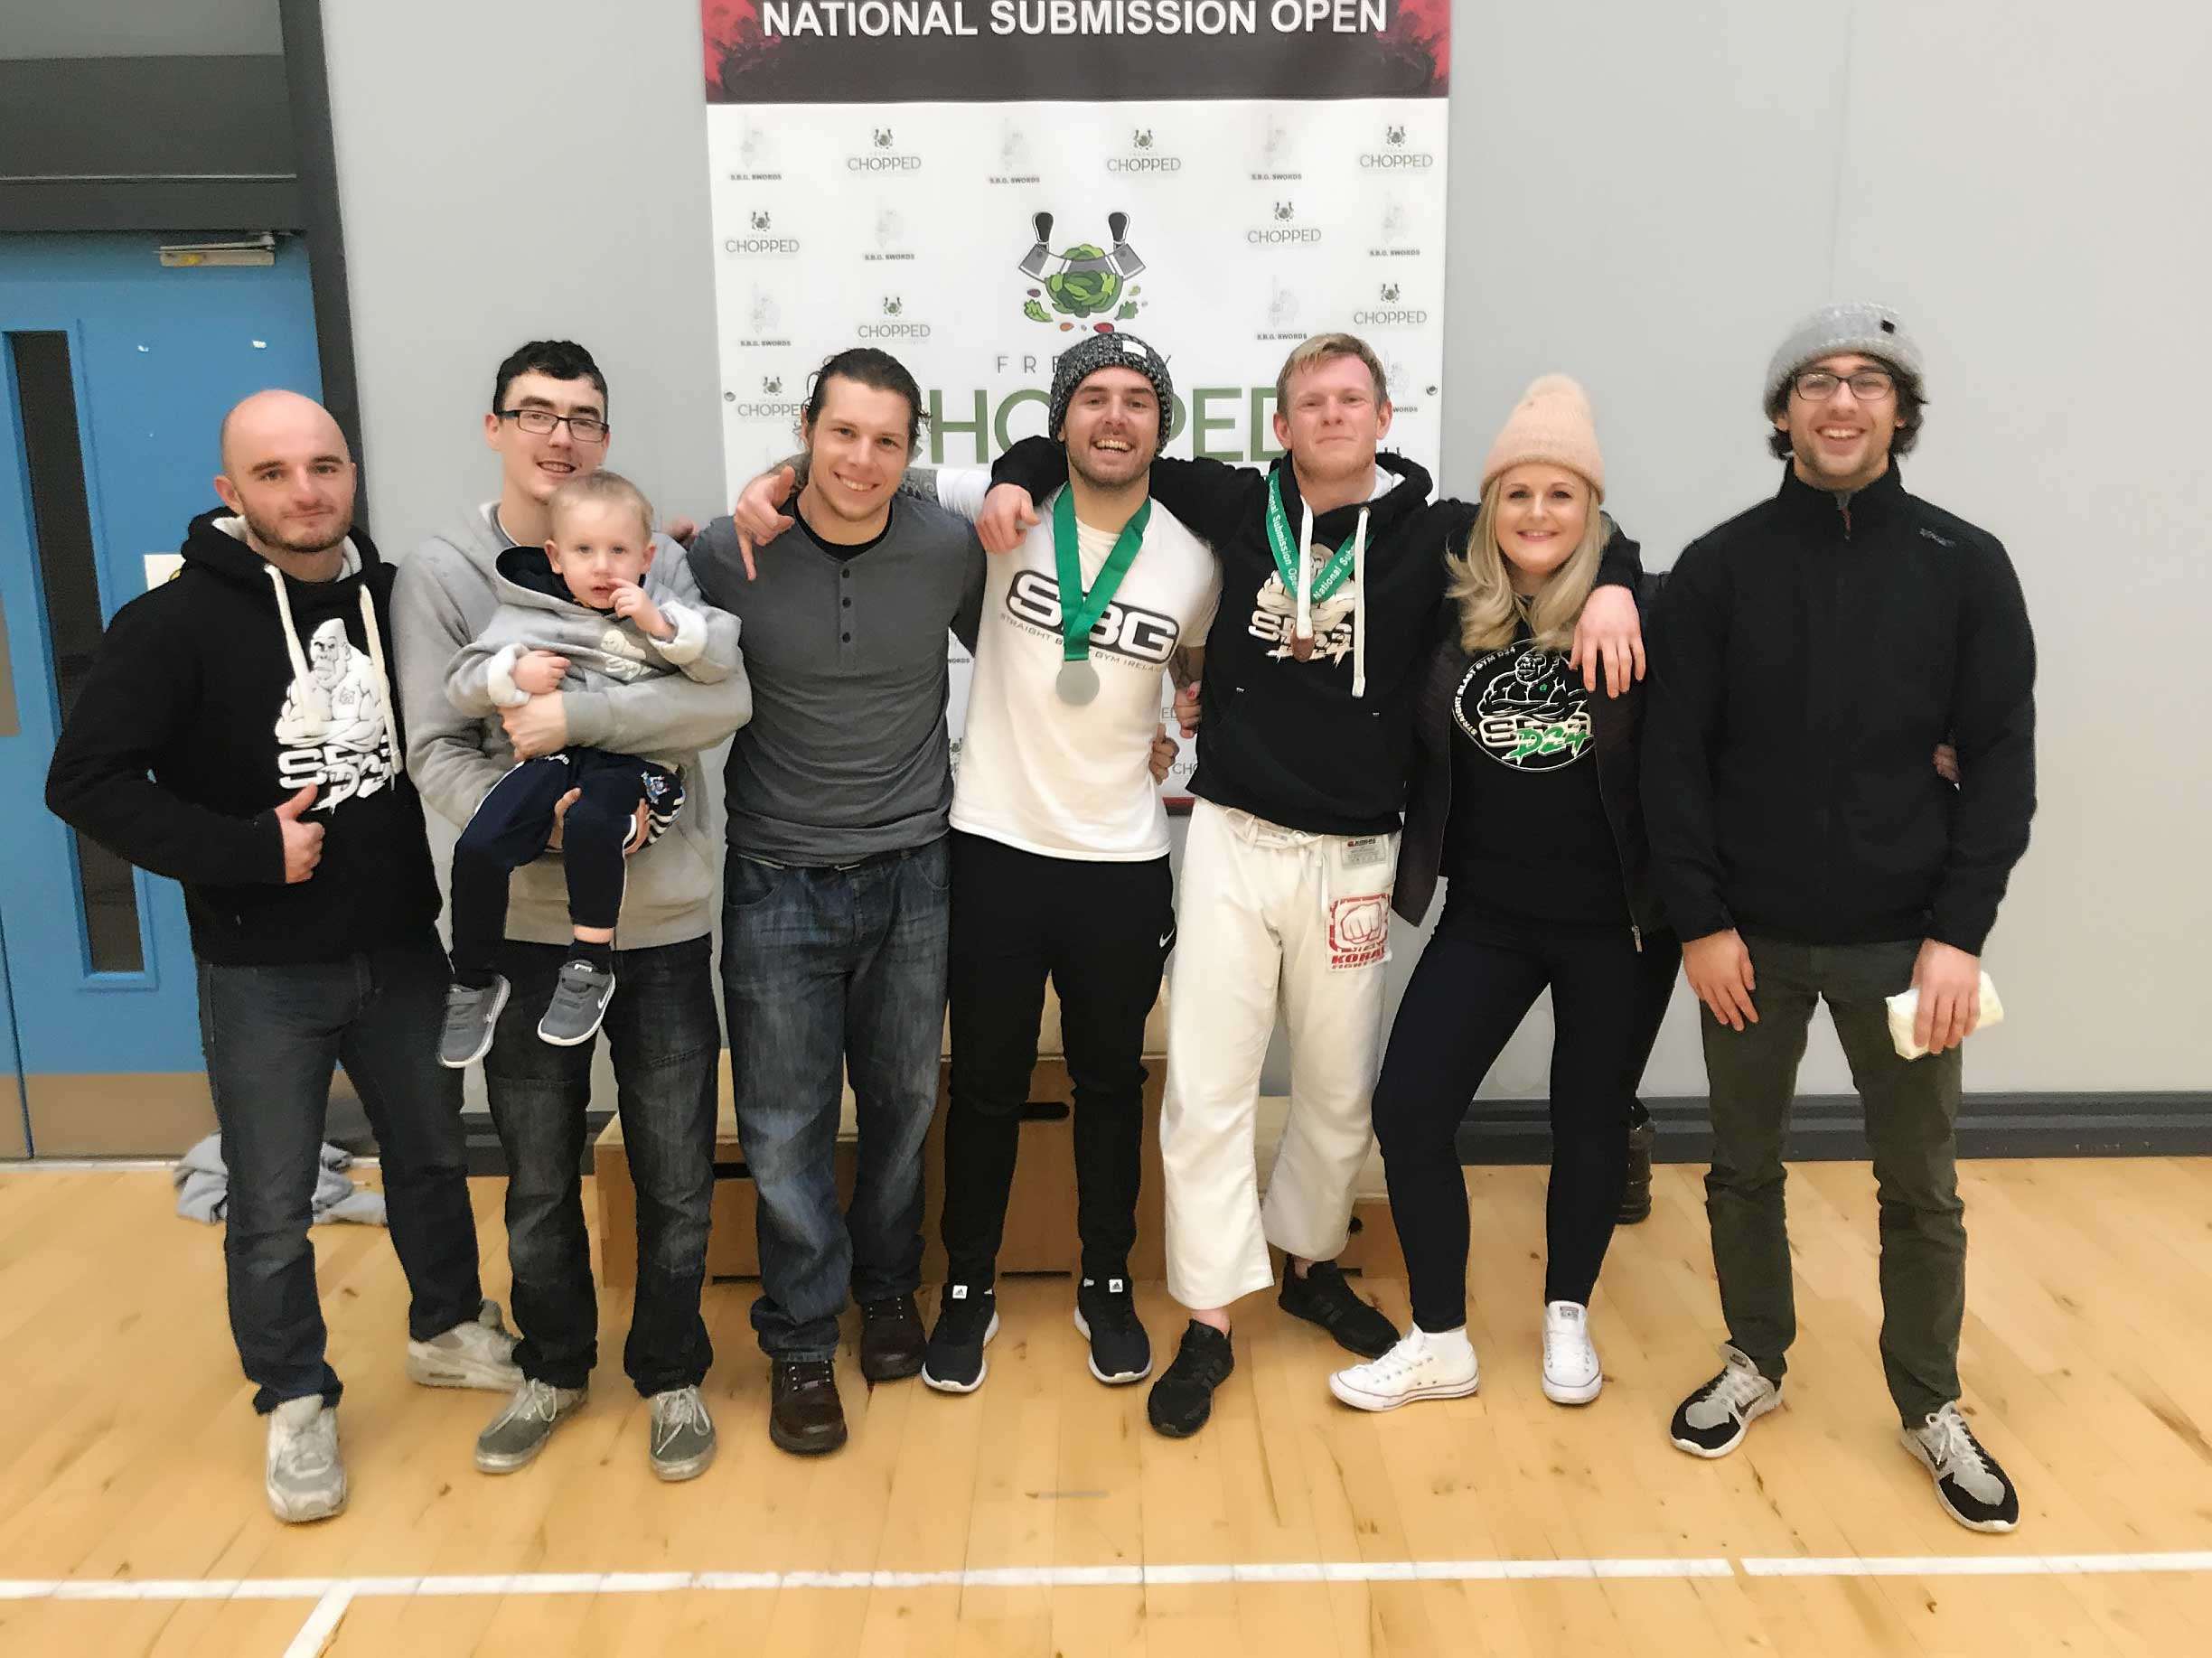 The SBG Dublin24 team at National Submission Open